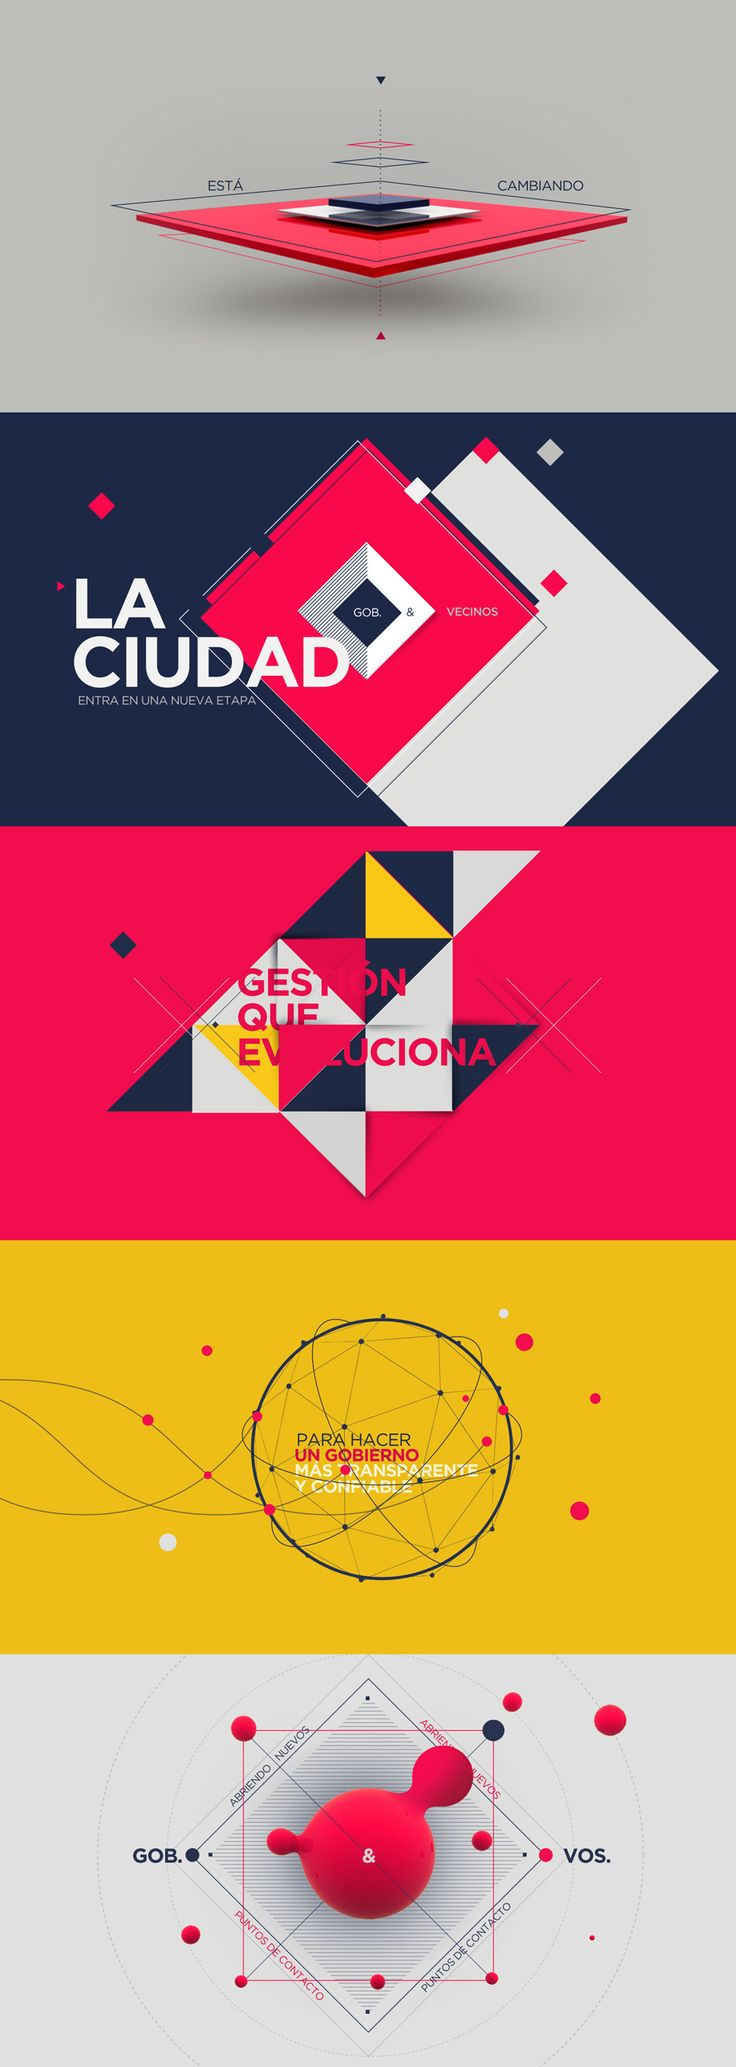 Color / Layout / Framing / Graphics /// Gobierno Abierto - Carla Dasso